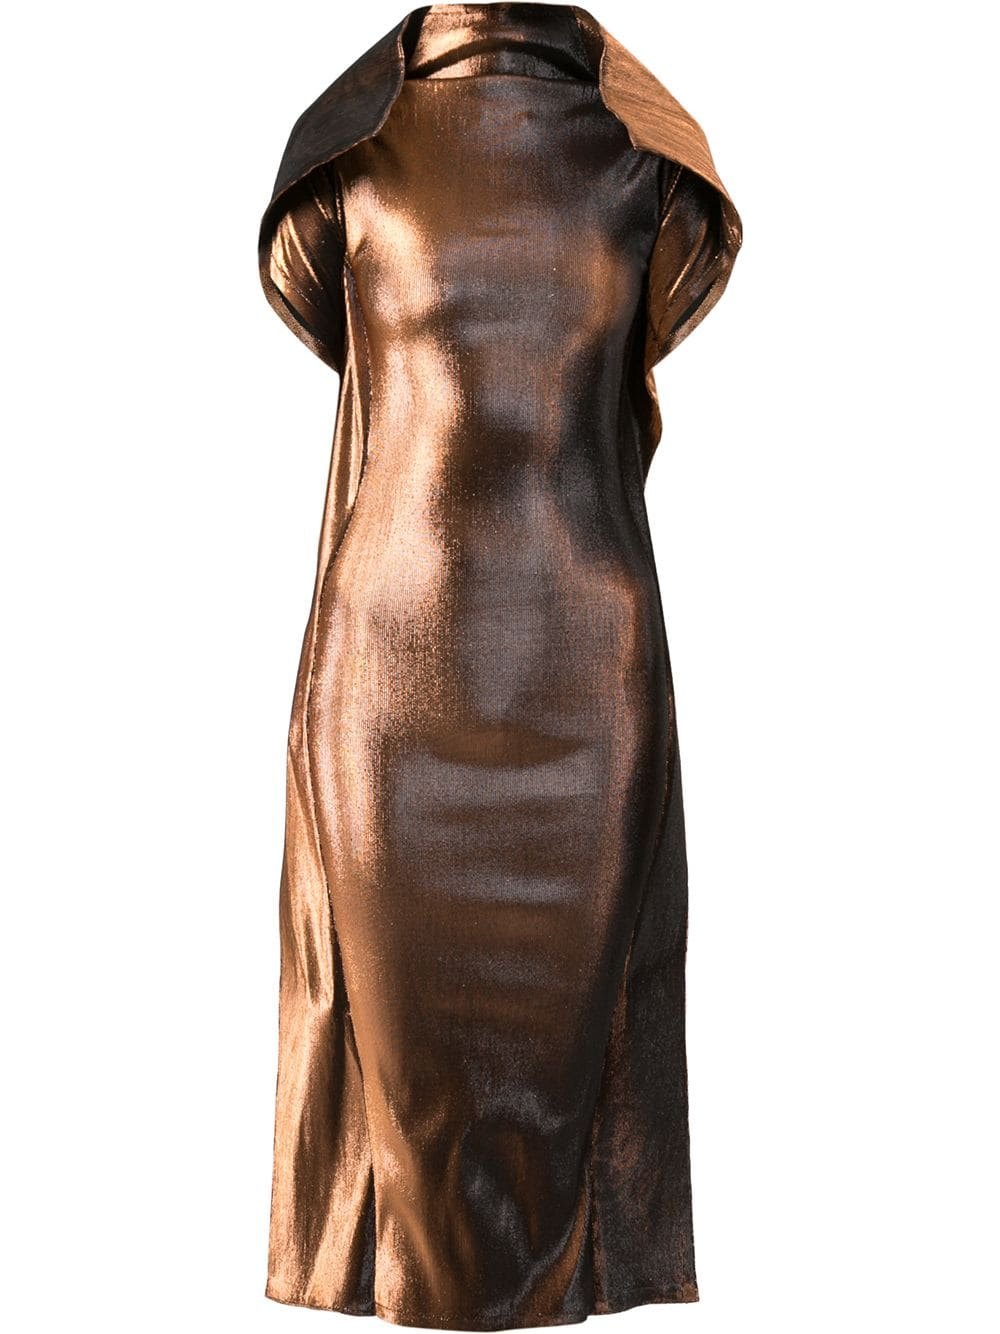 5 Trendy New Years Eve Outfits for Women and Men, PAULA KNORR metallic bronze dress